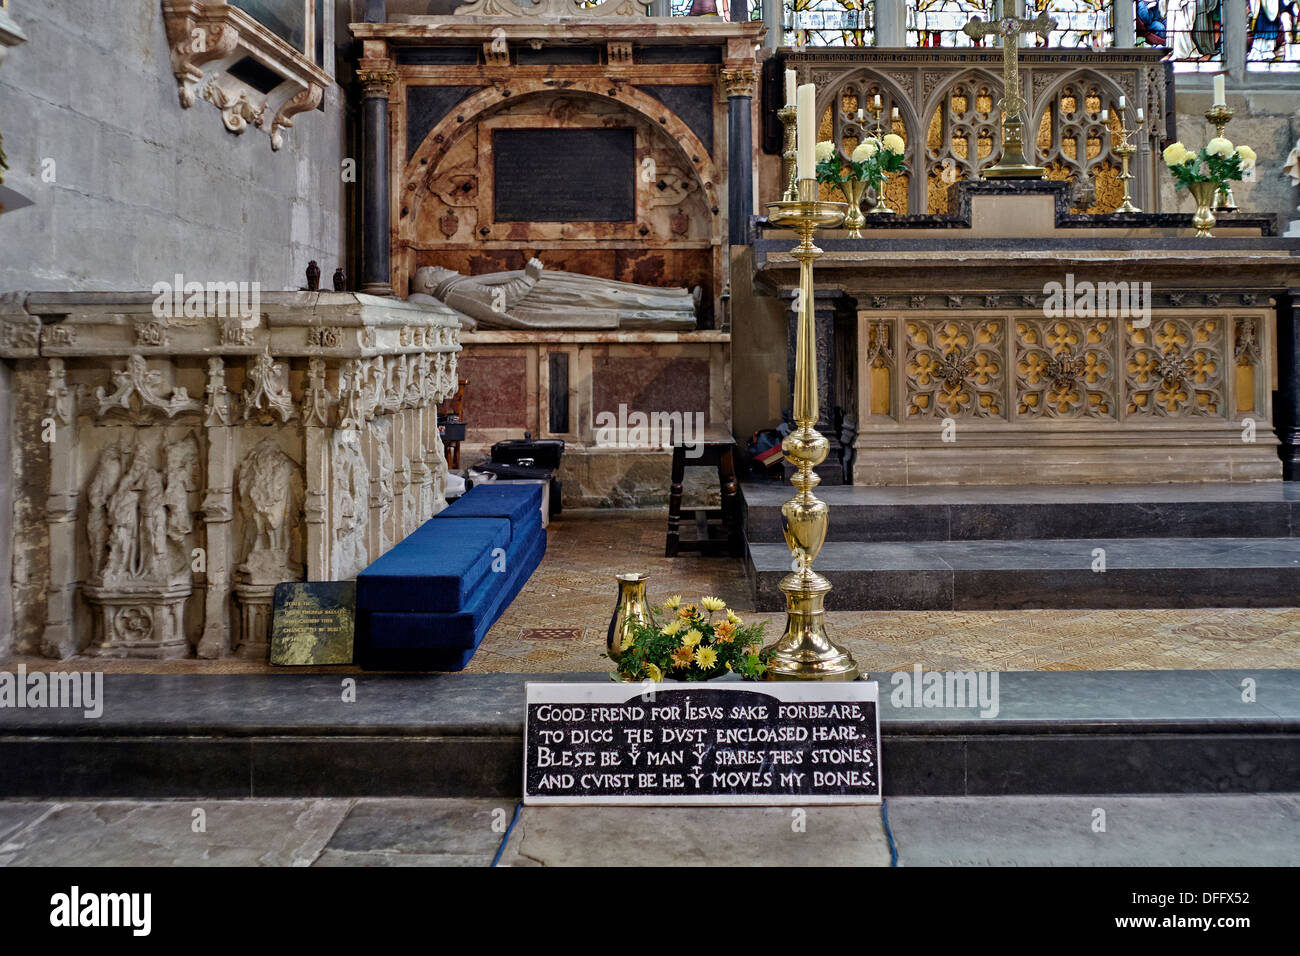 william-shakespeares-grave-and-monument-